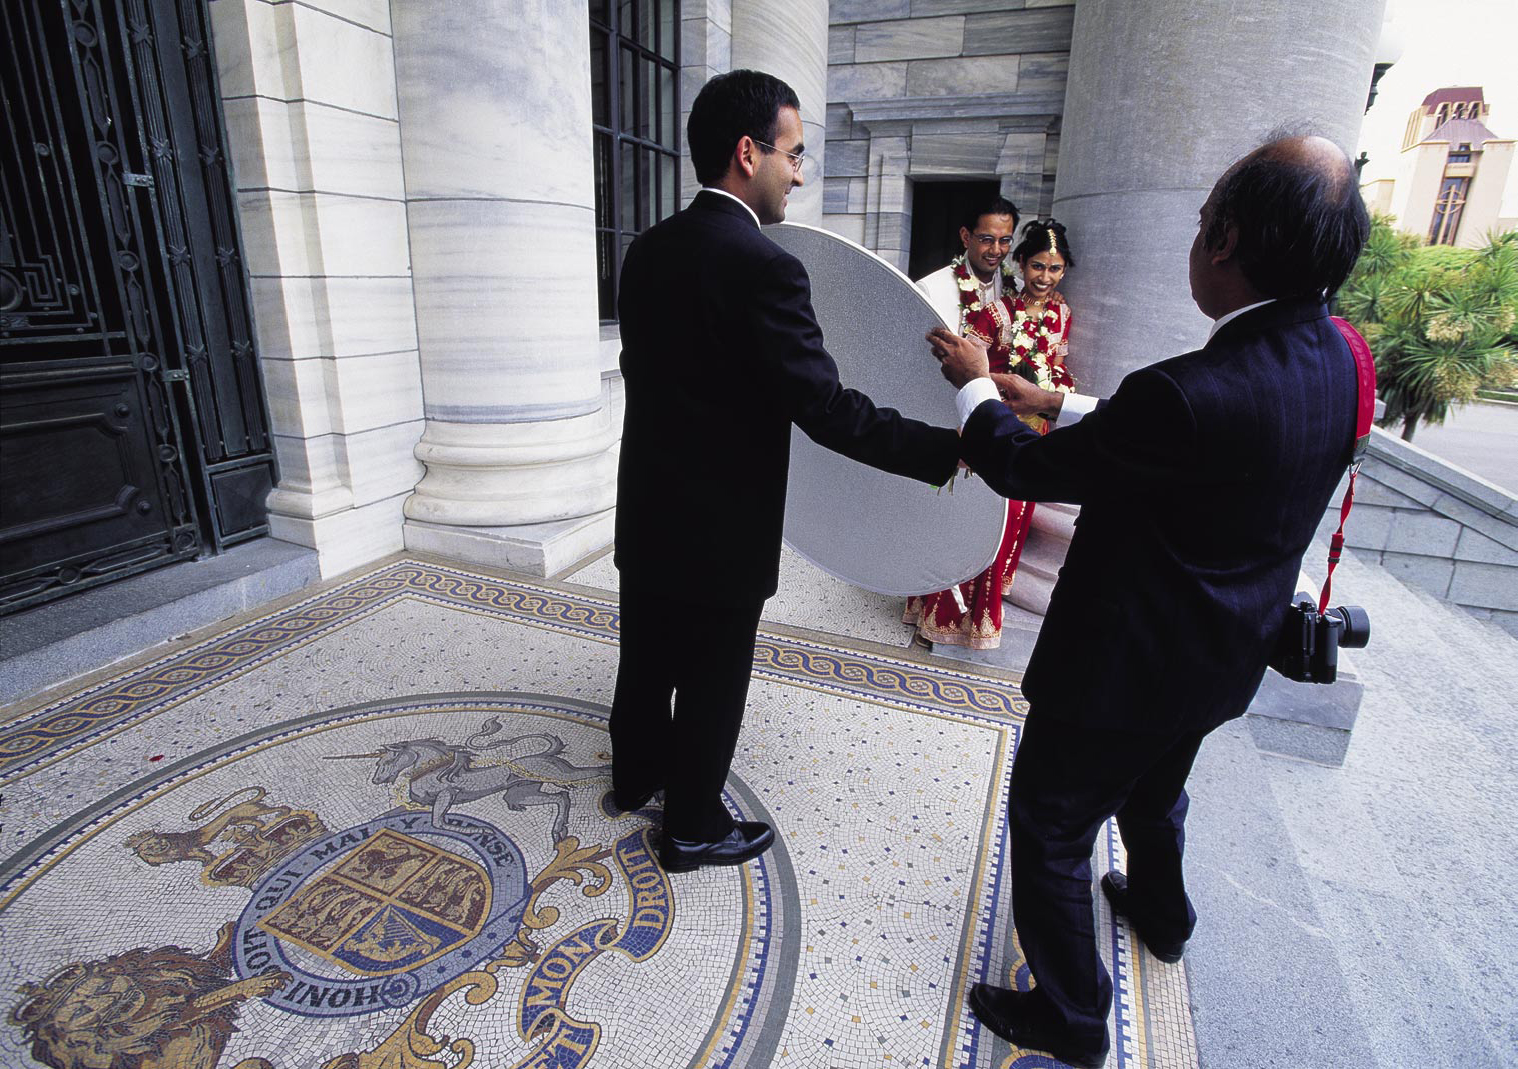 Parliament is the scene of more than just lawmaking and politics. Wellingtonians Mitesh and Sueneta Patel chose to have their wedding photographs taken on the steps of Parliament House because they admired the marble pillars.